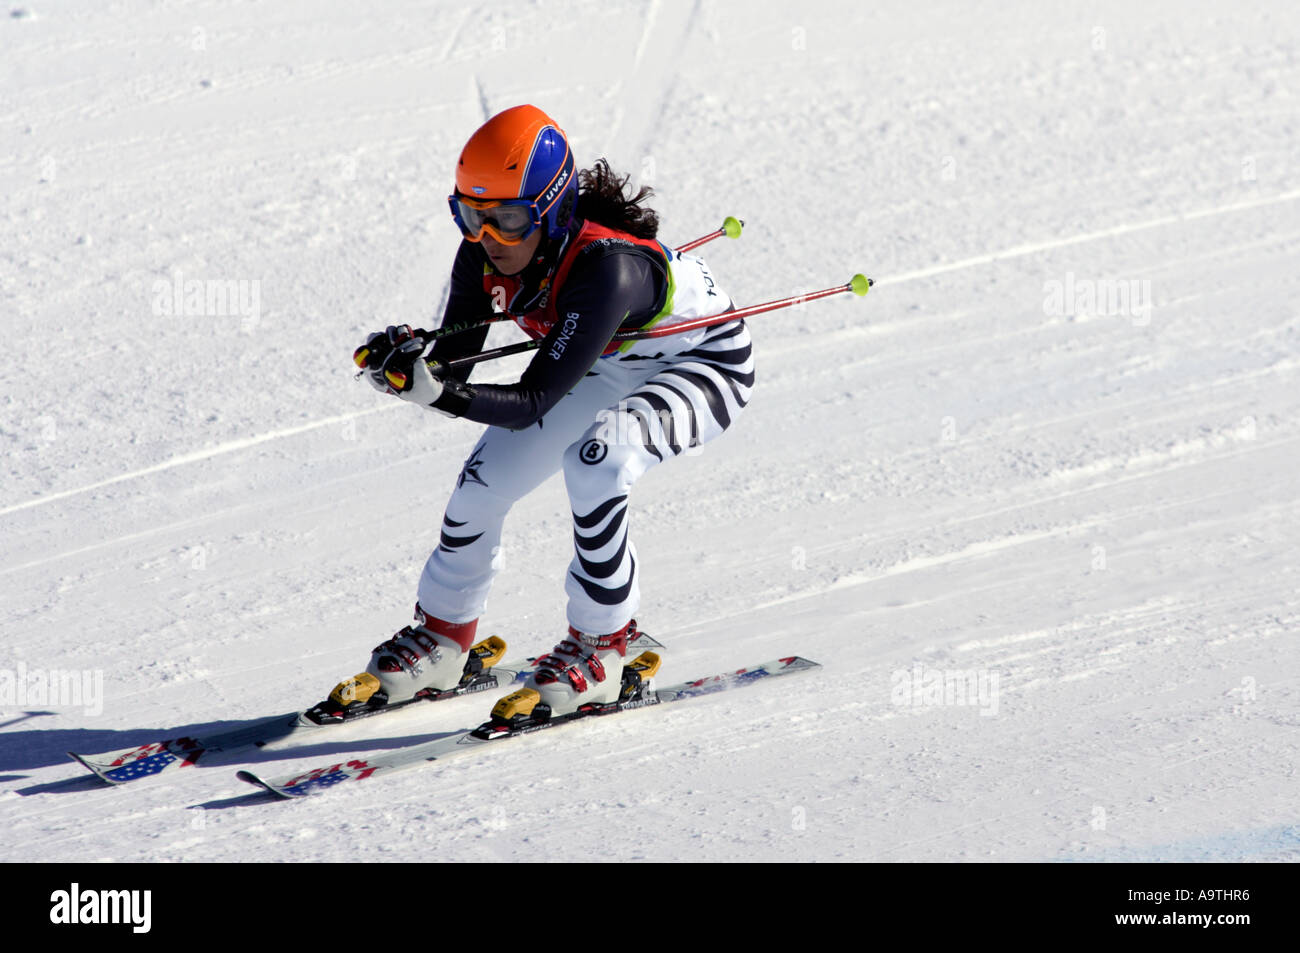 Reinhild Moeller LW4 of Germany in the Womens Alpine Skiing Super G competition - Stock Image